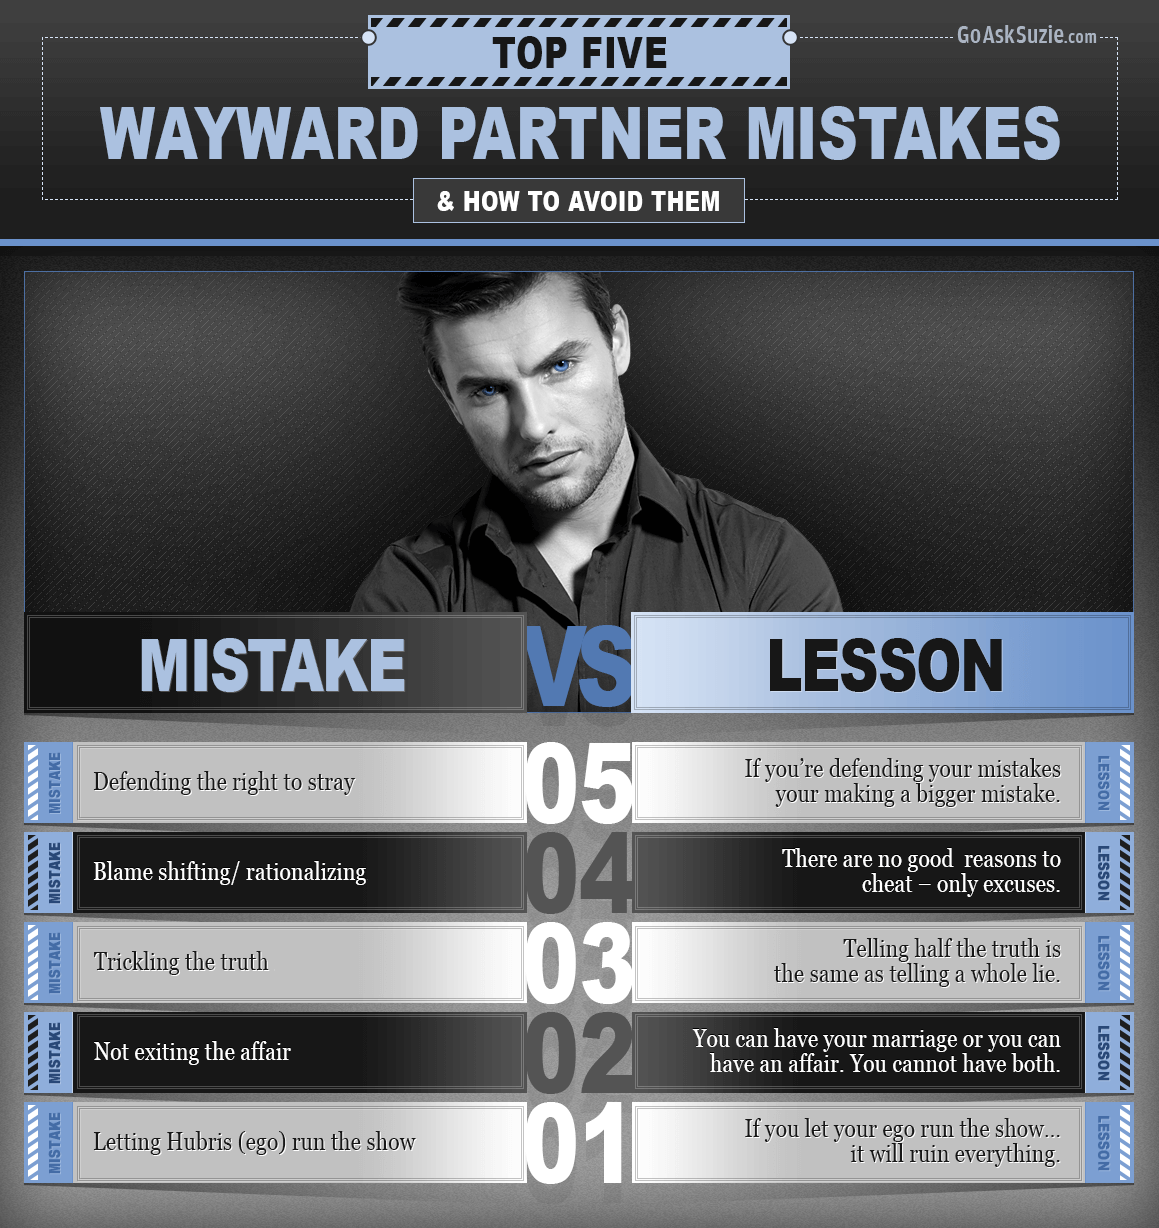 Wayward Partner Mistakes